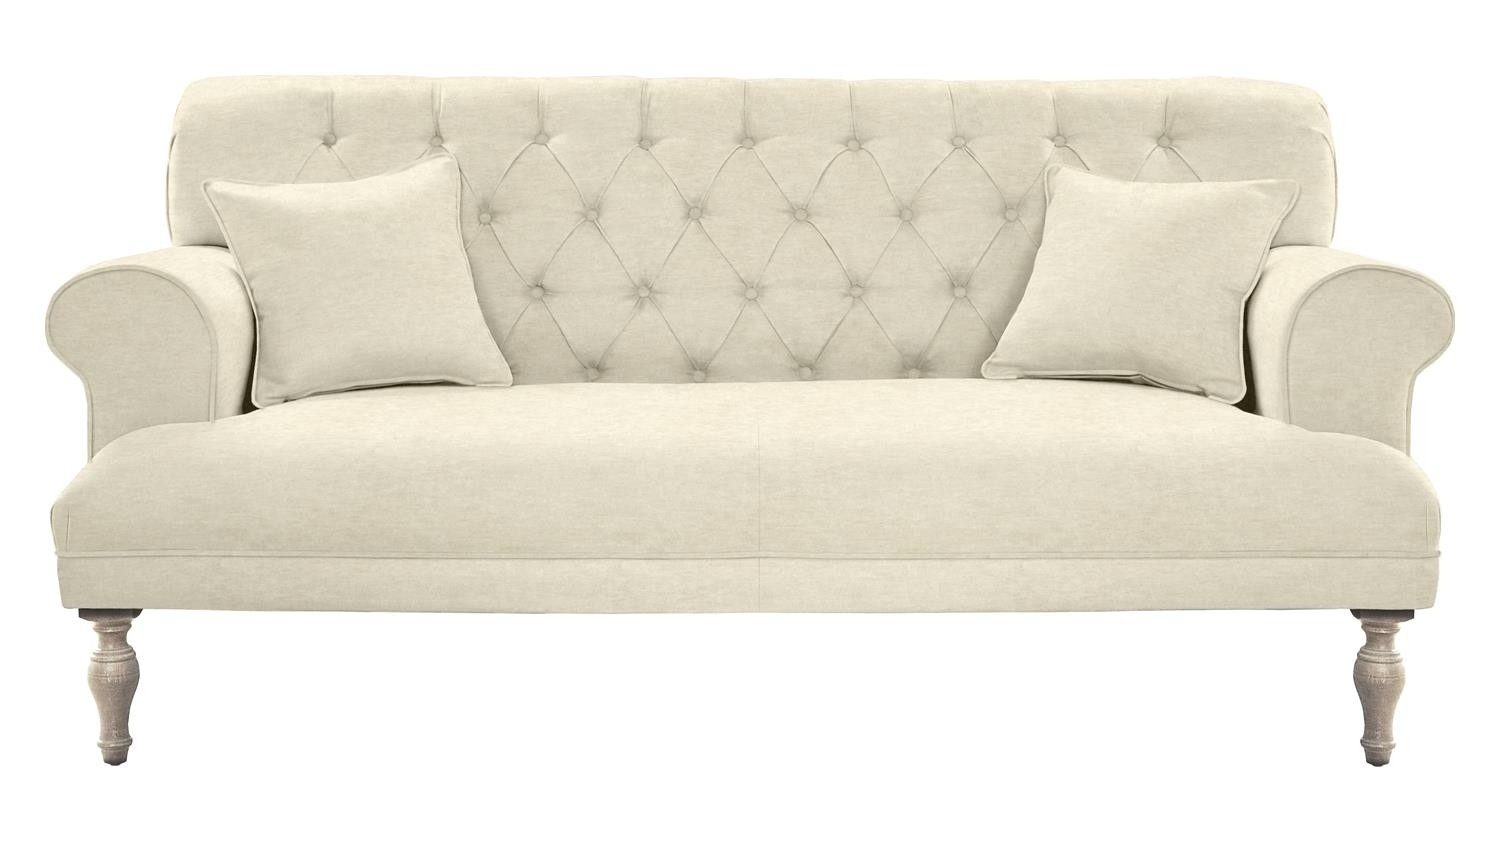 The Chicklade 2 Seater Sofa